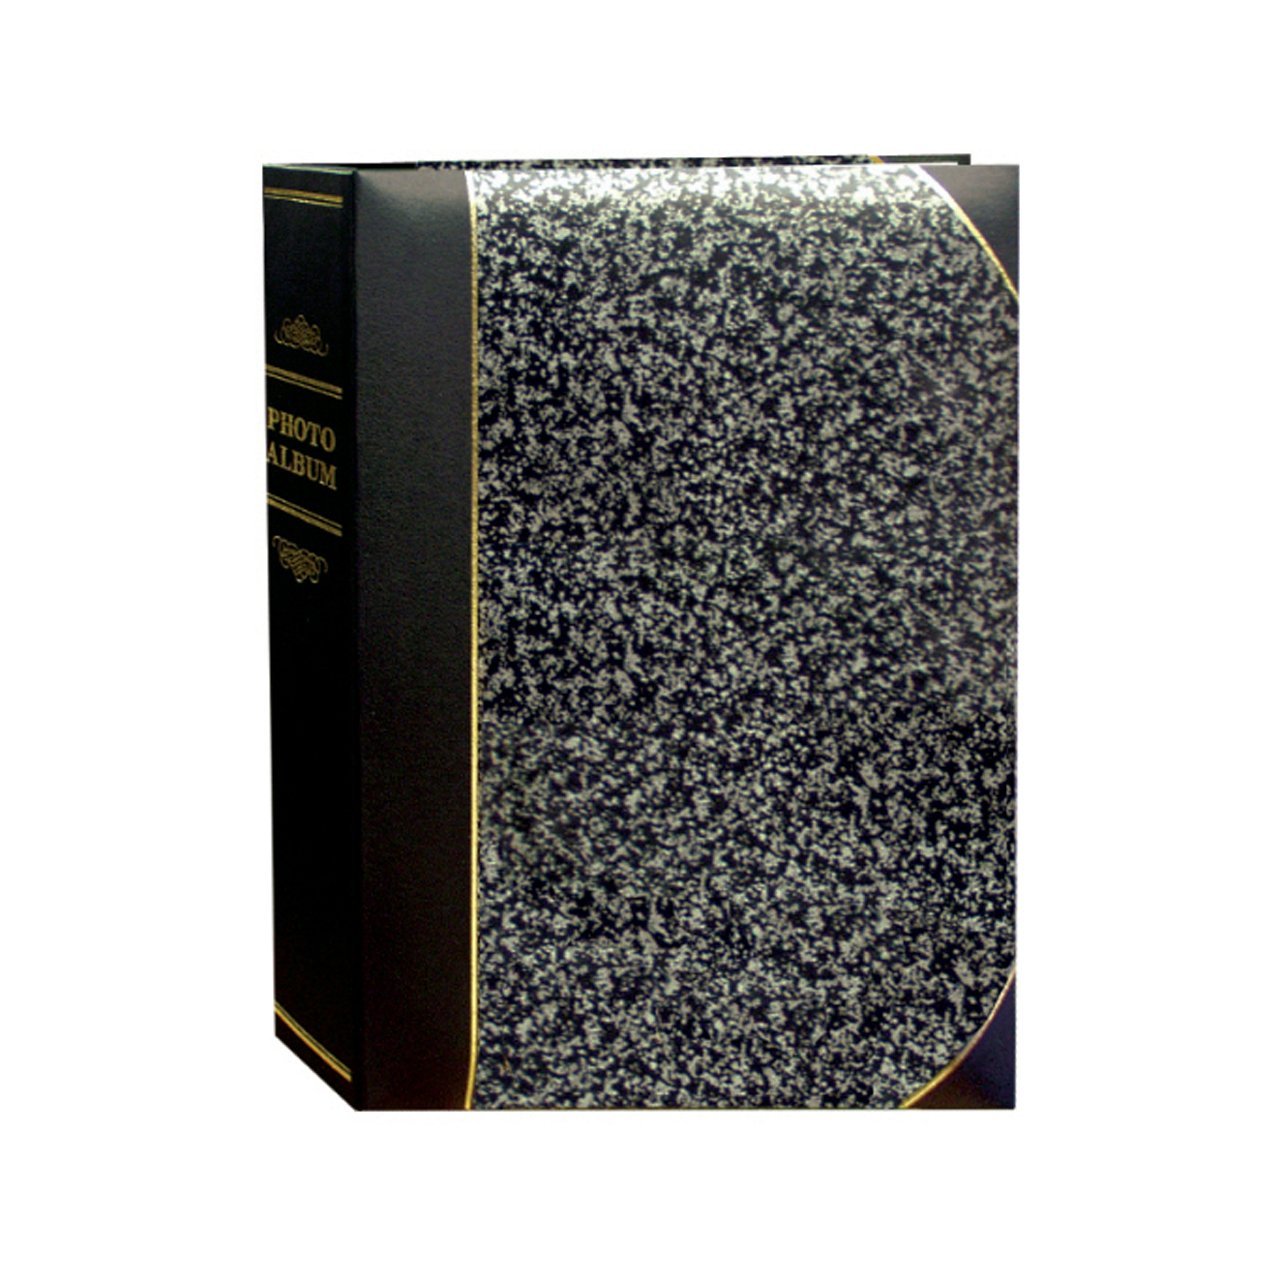 Pioneer Photo Albums BT-68 100-Pocket Leatherette Cover Ledger Style Le Memo Photo Album, 6 by 8-Inch, Silver and Black BT-68/SM